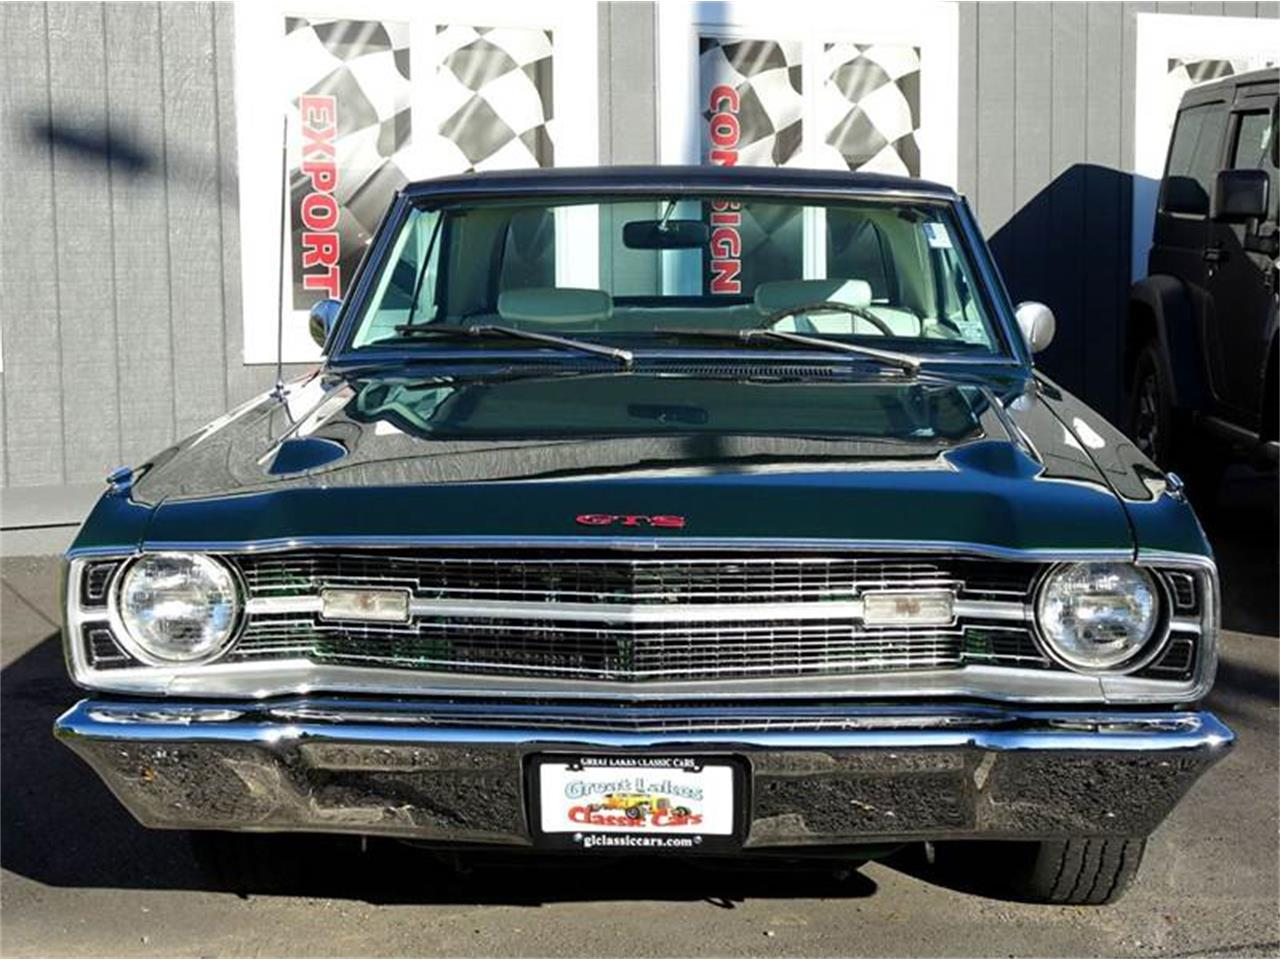 Large Picture of '69 Dodge Dart located in Hilton New York - $64,900.00 - M41P